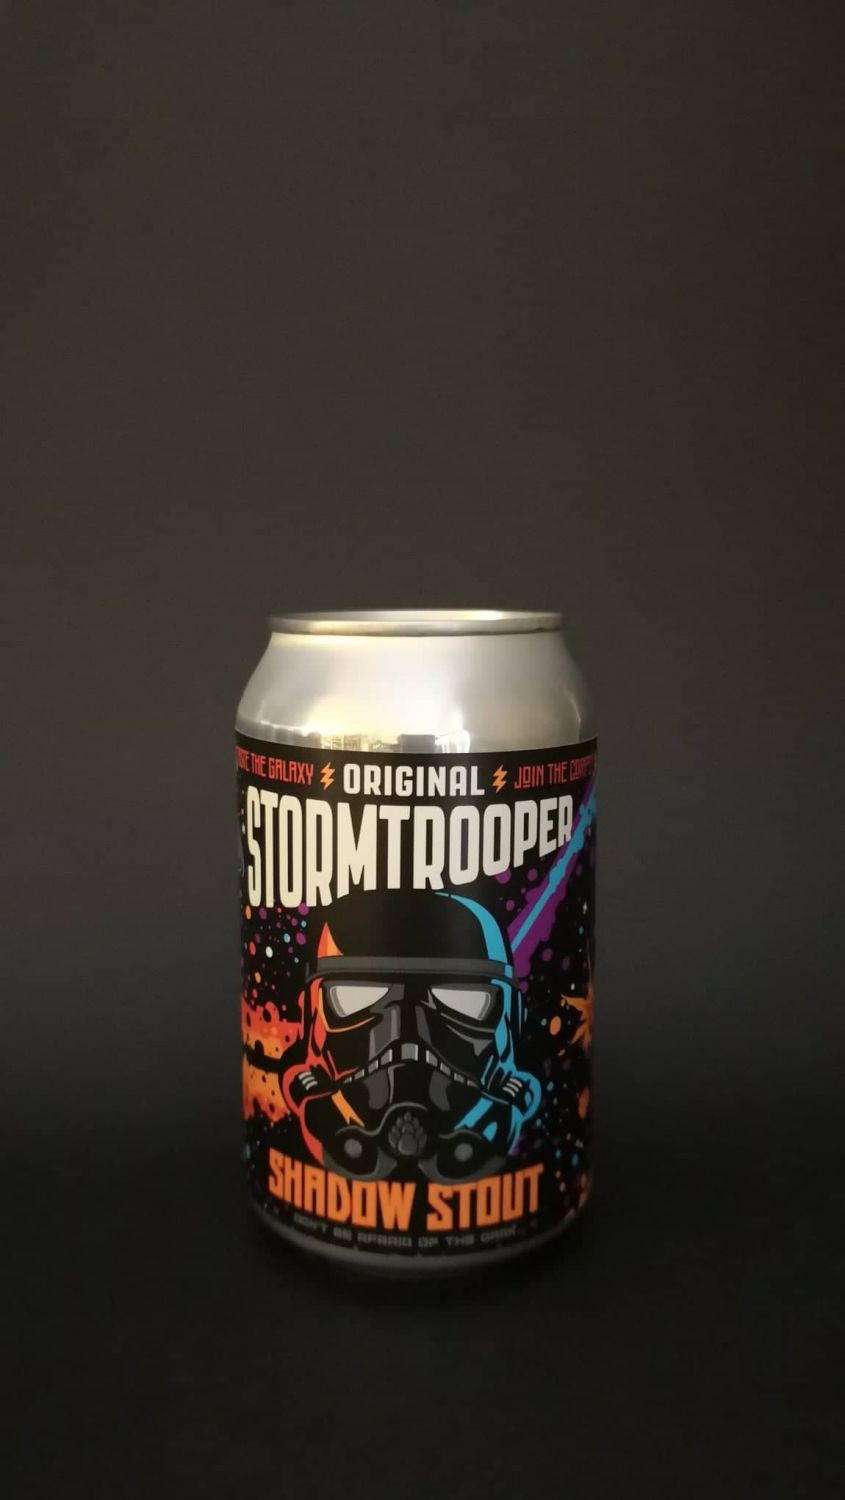 Stormtrooper Shadow Stout